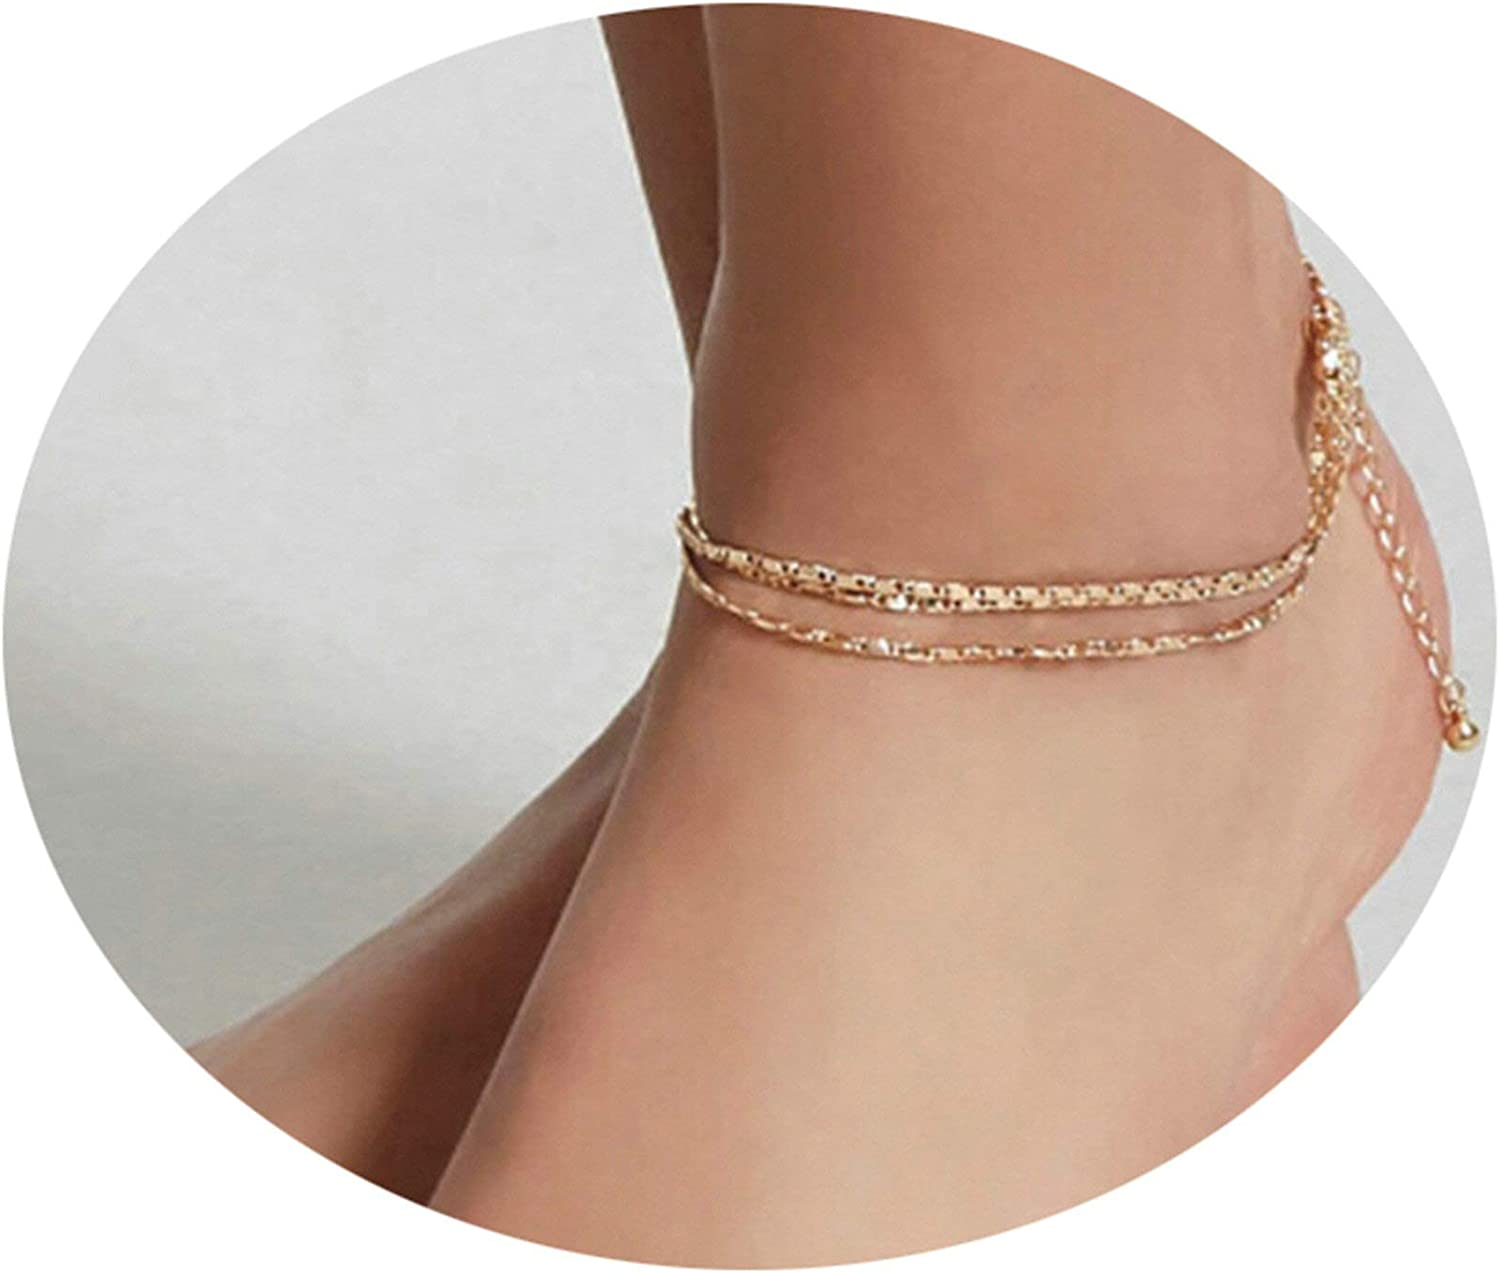 KnSam Ankle Chain Anklets Barefoot Sandals Accessories Gold Alloy Shells Anklets Vintage